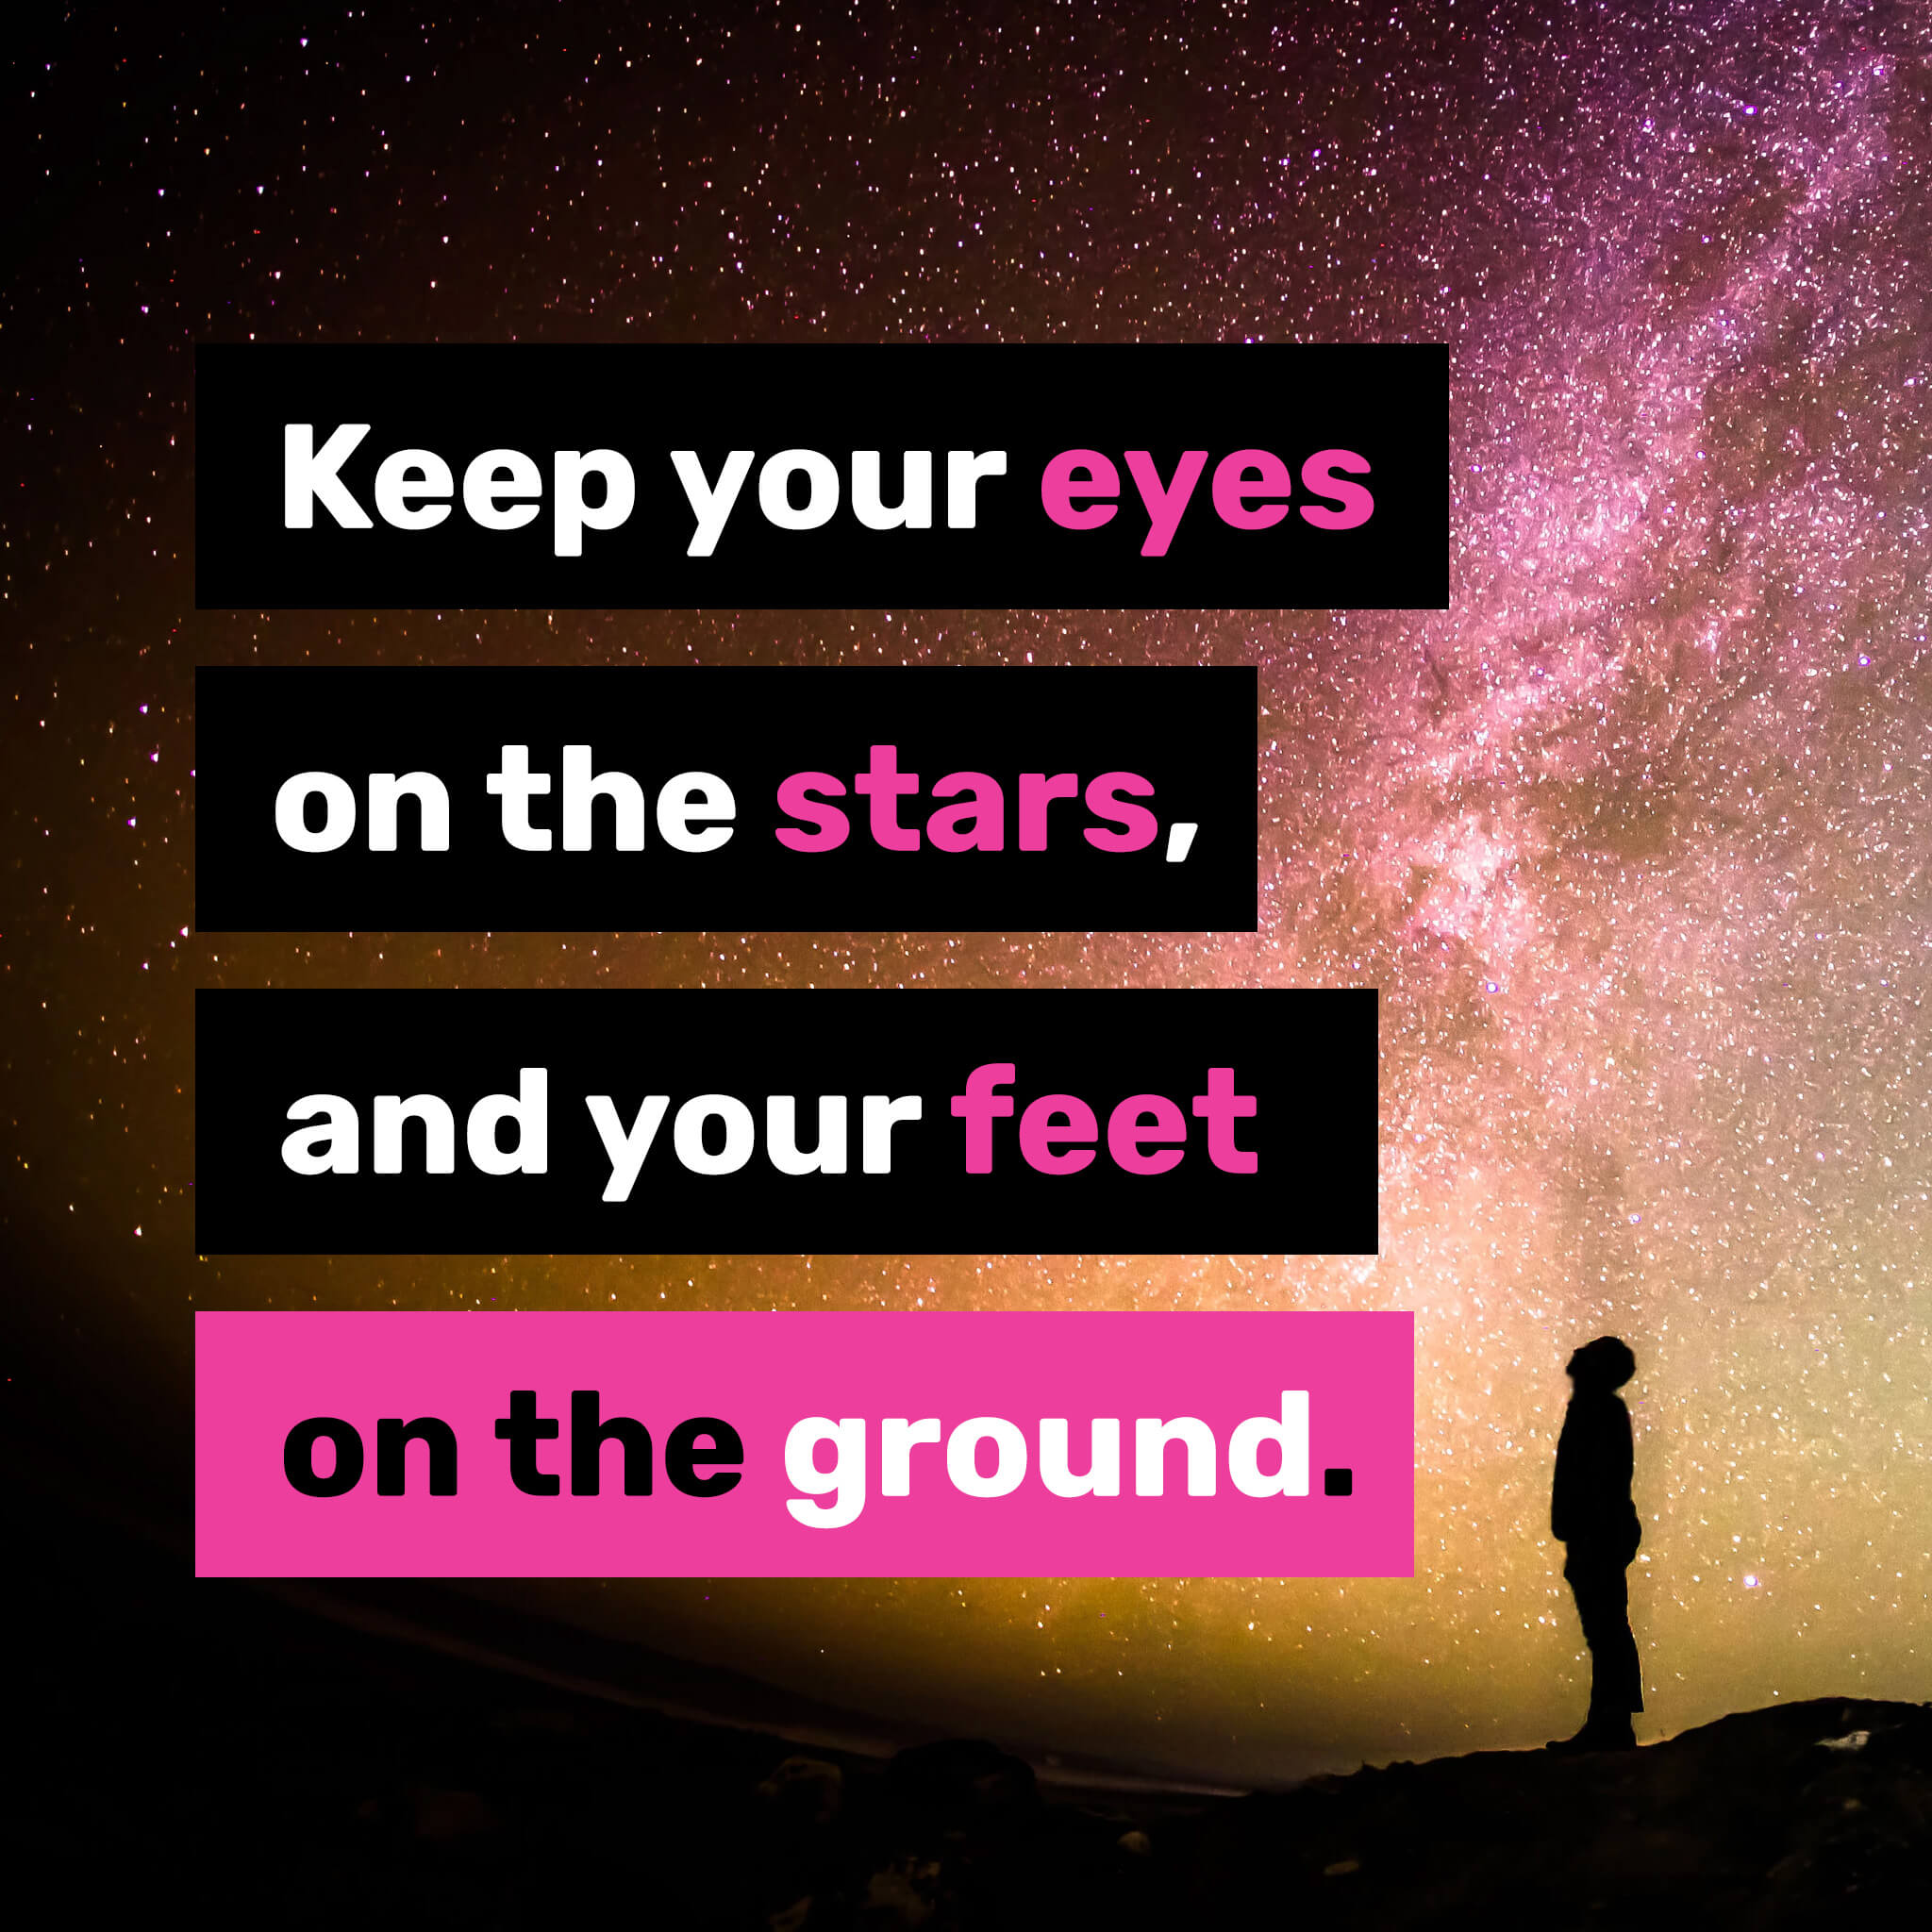 your have ground on the feet